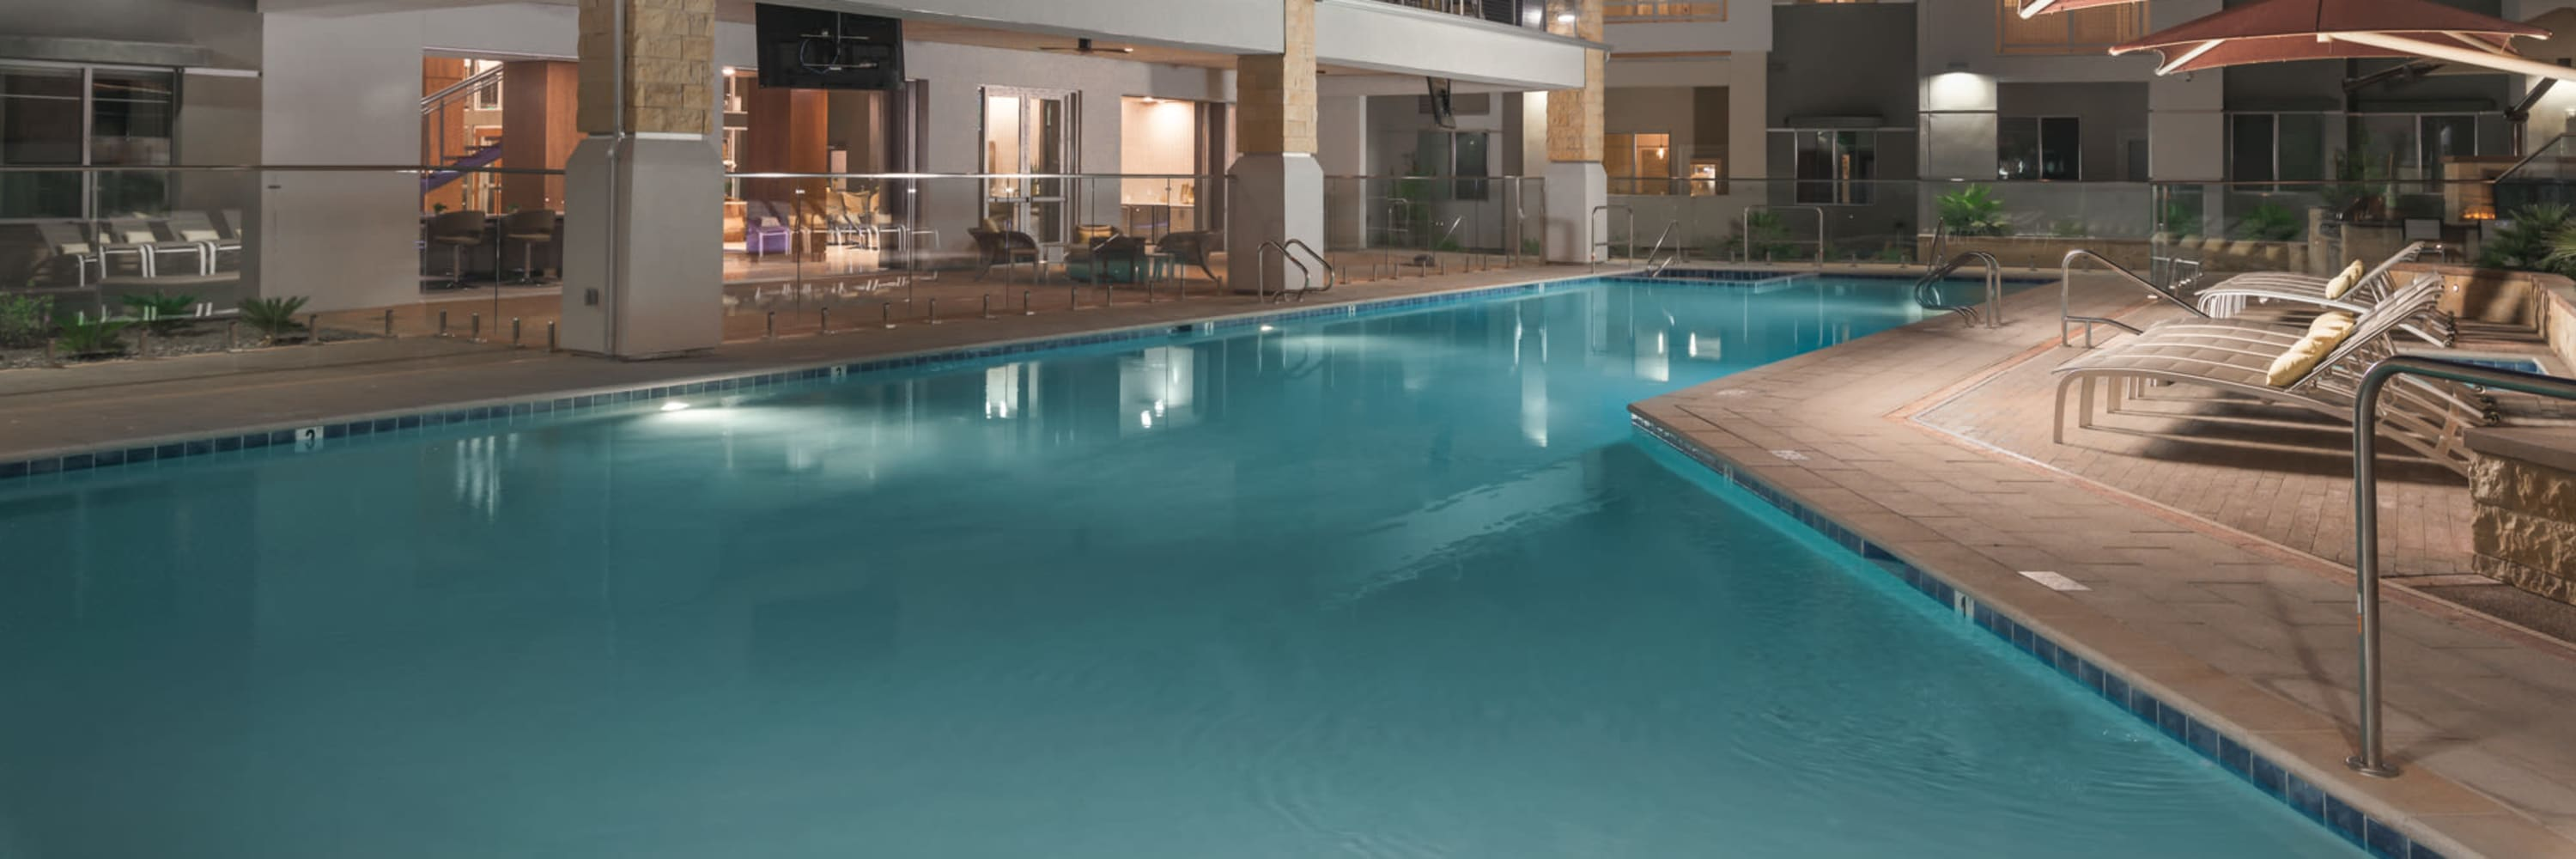 Photos of The District at Scottsdale in Scottsdale, Arizona